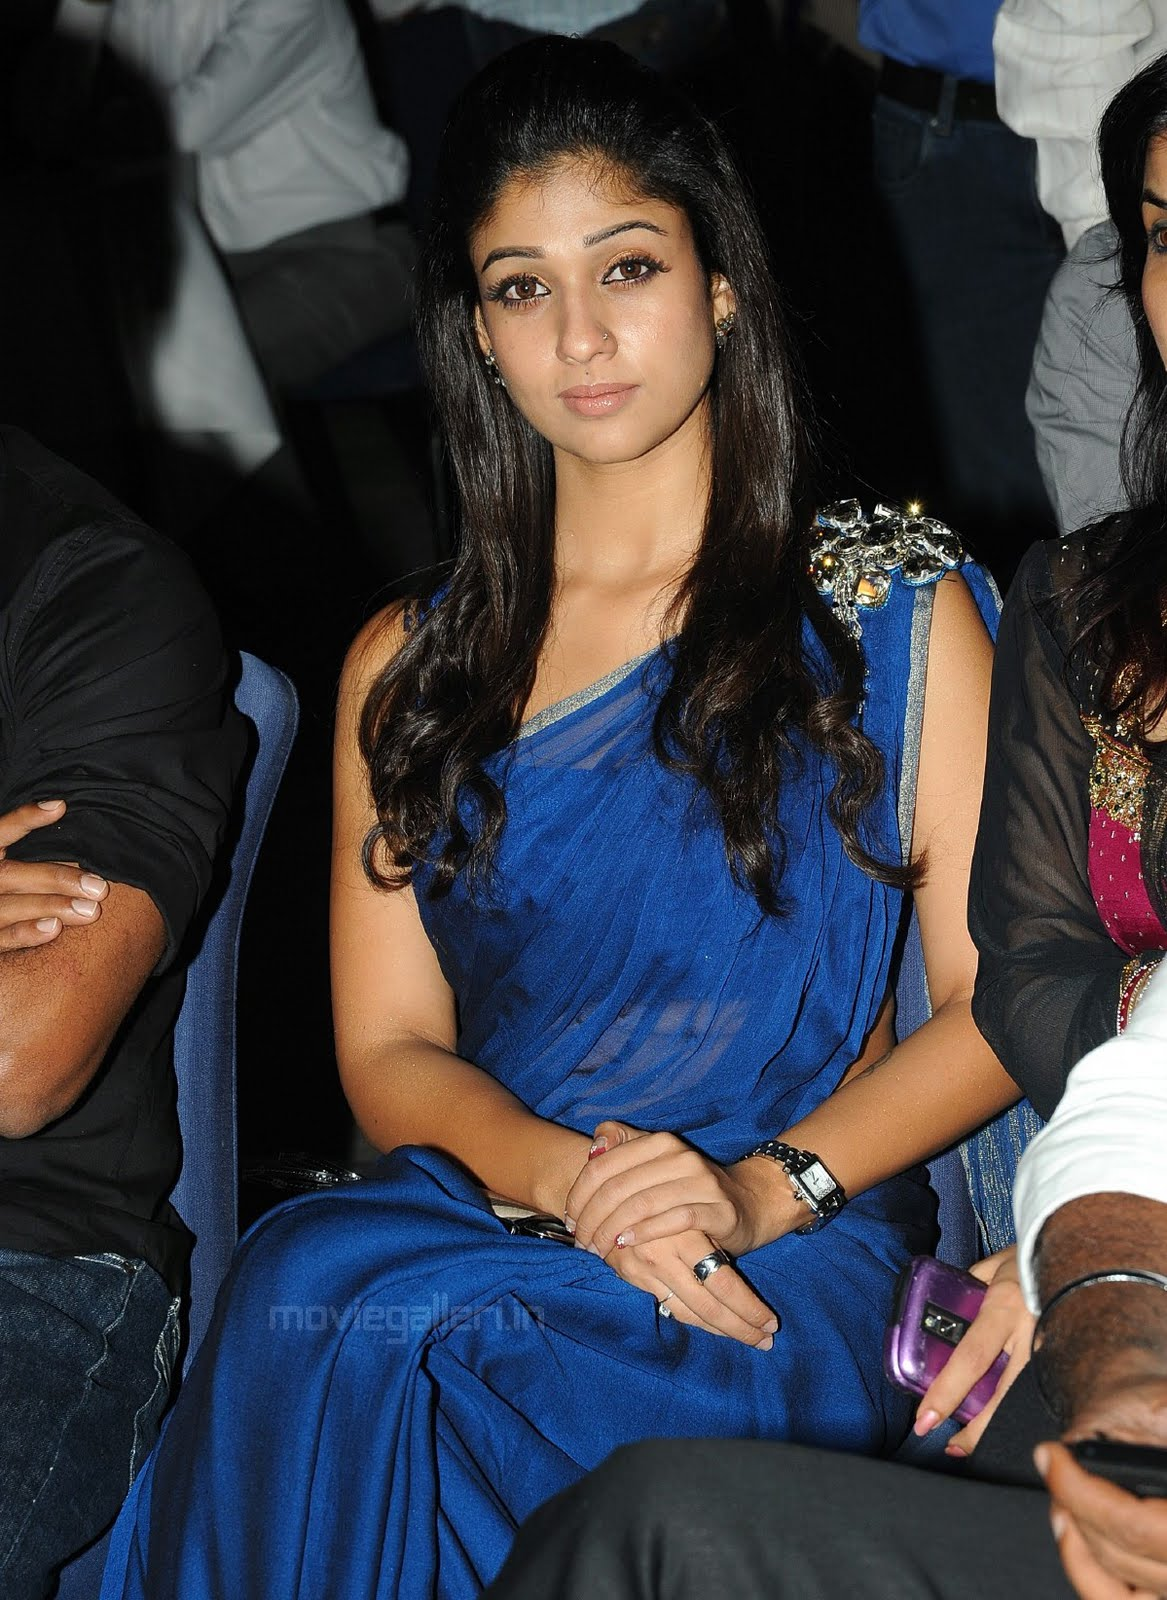 Film Actress Hot Pics Nayanthara Sexy In Sleeveless Blue -3343